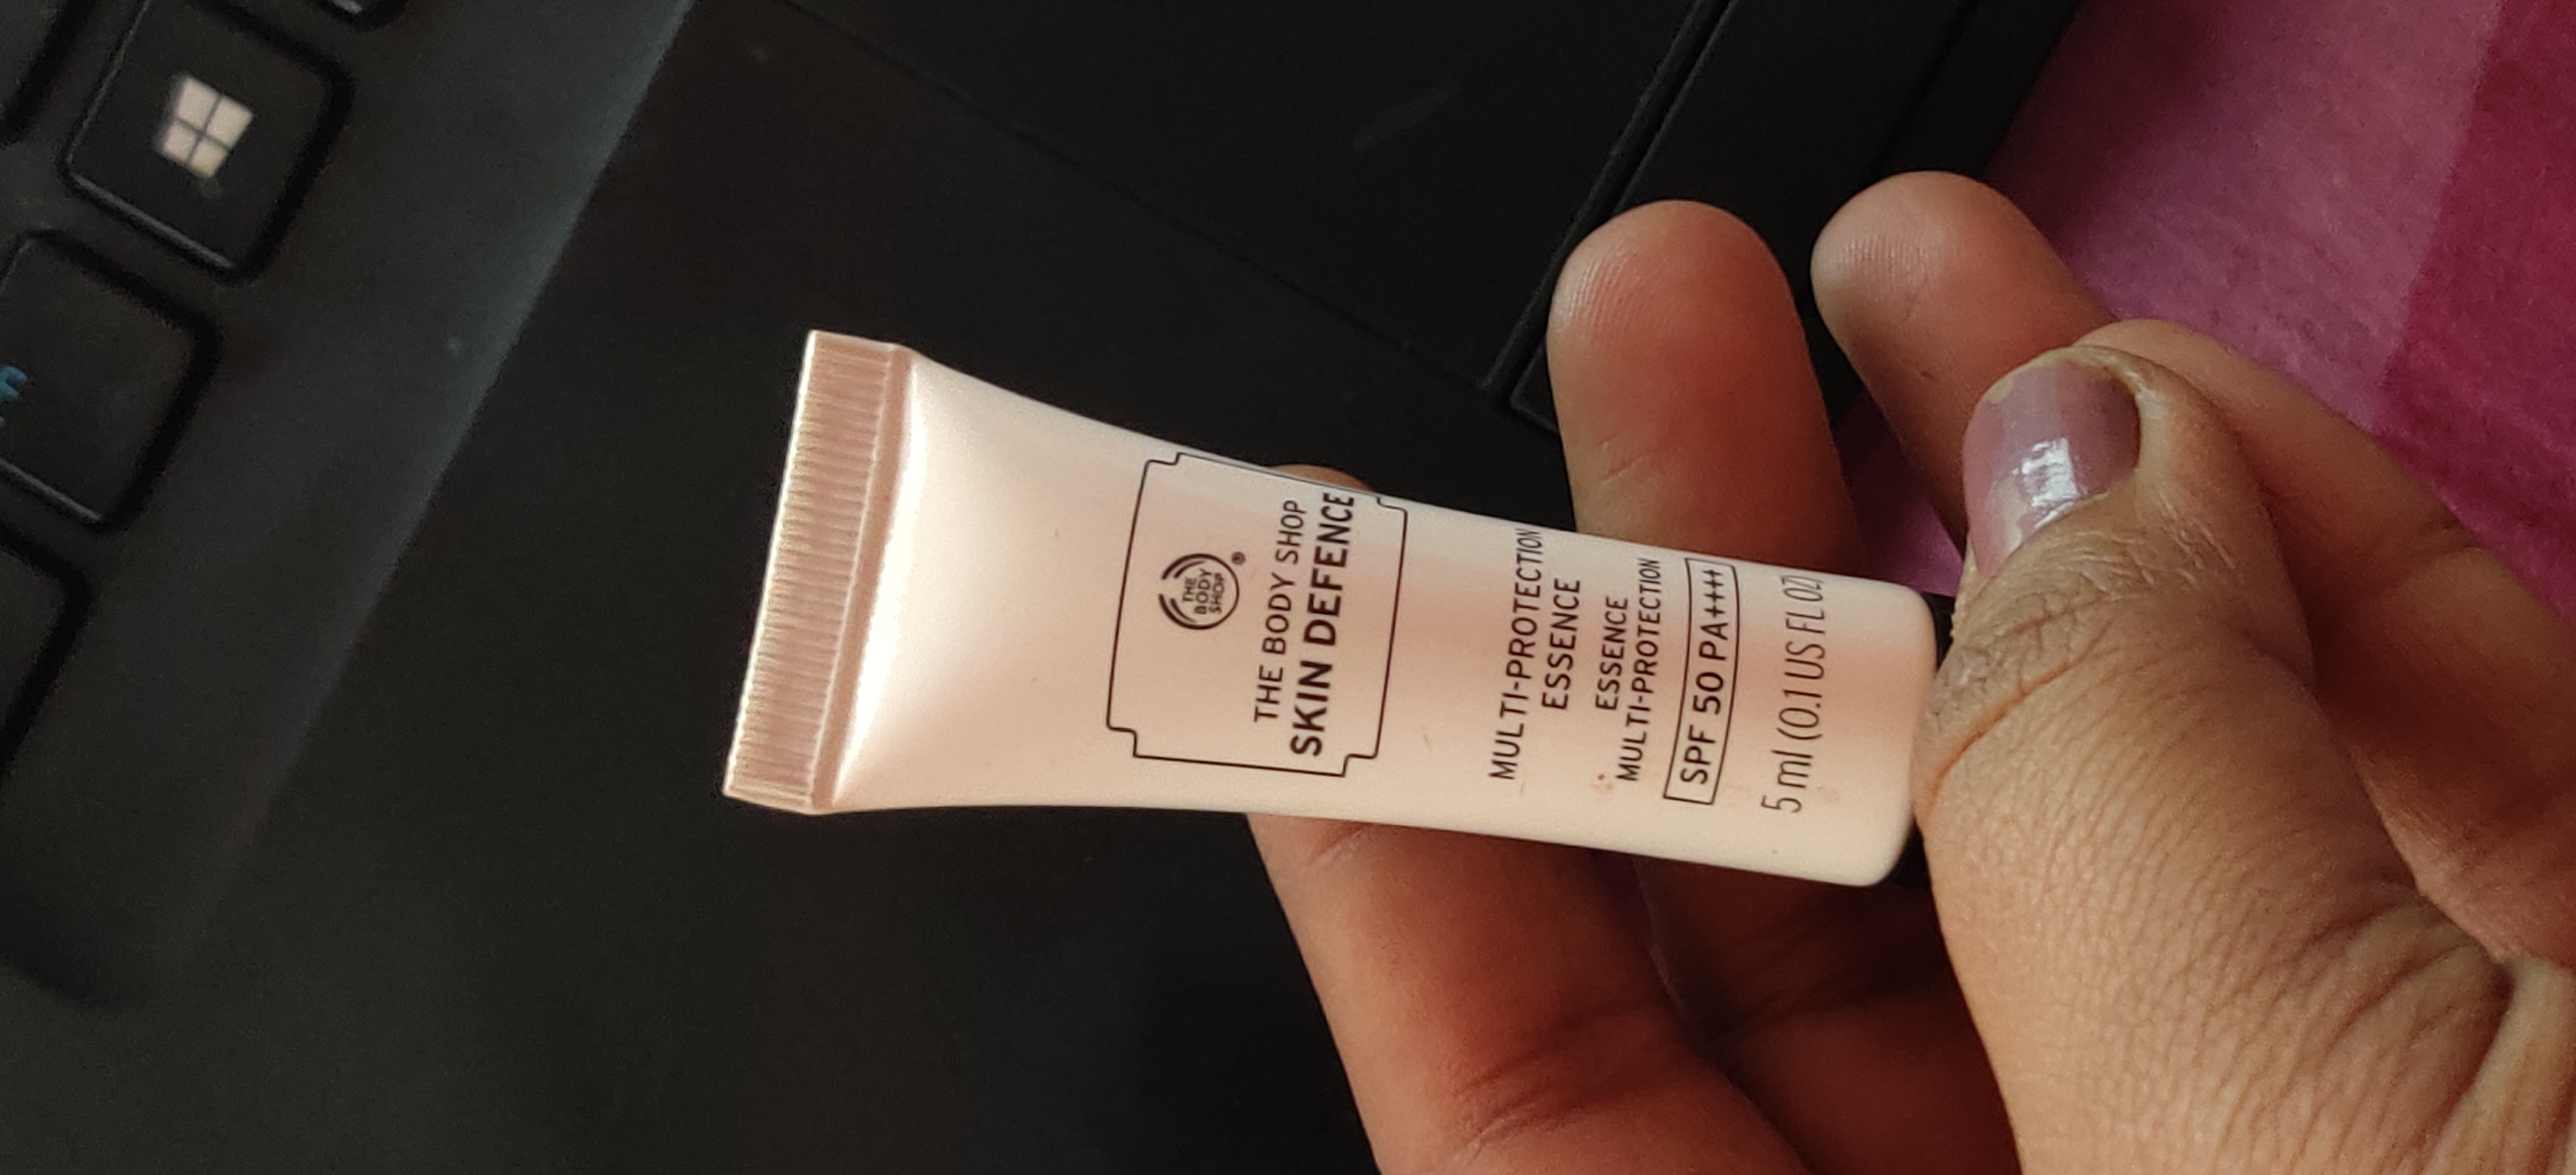 The Body Shop Skin Defence Multi Protection Essence SPF 50 PA+++-Best SPF!!-By qwerty12345